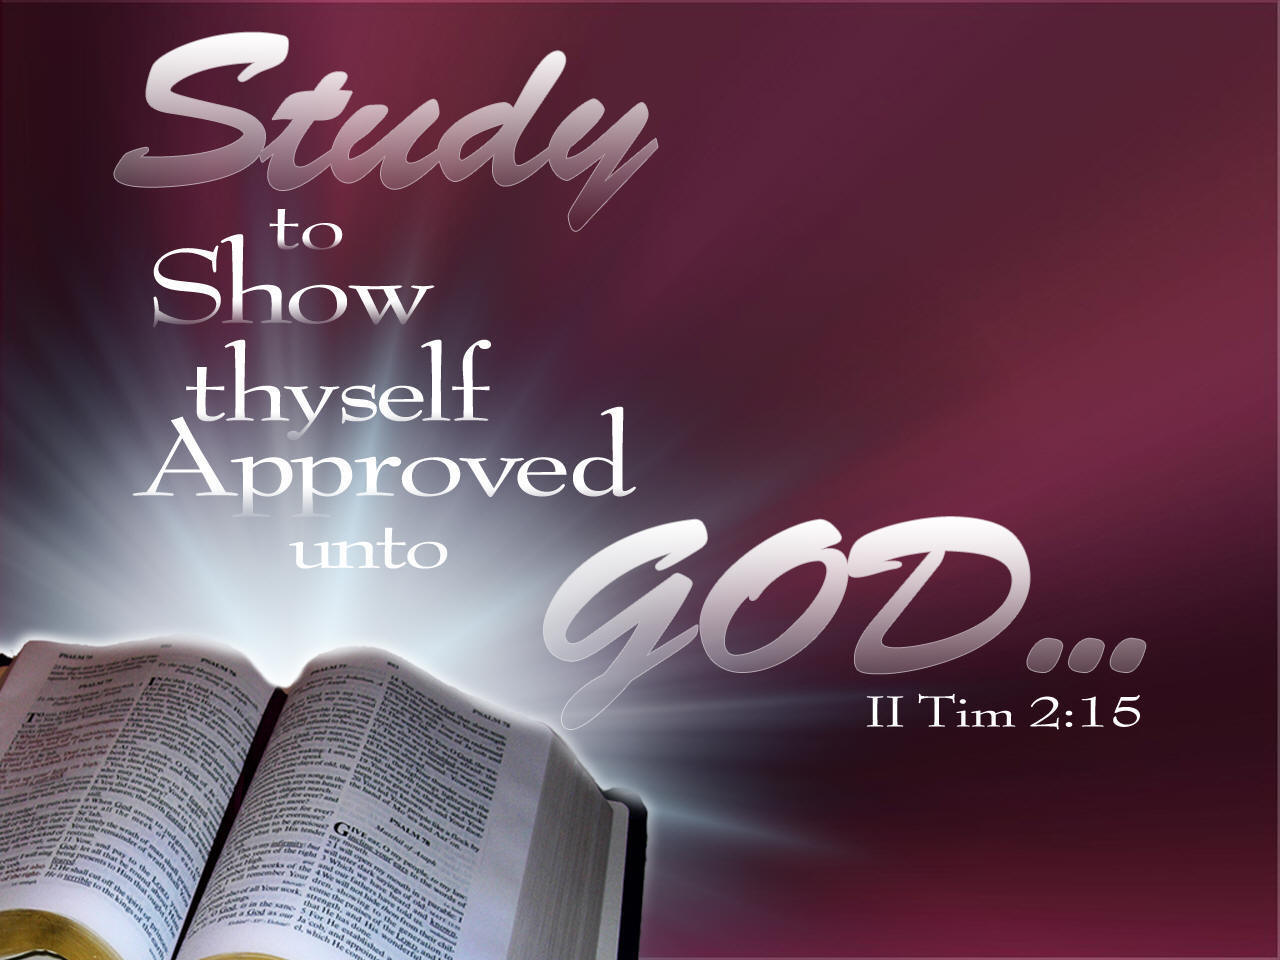 bible study software Software - Free Download bible study ...